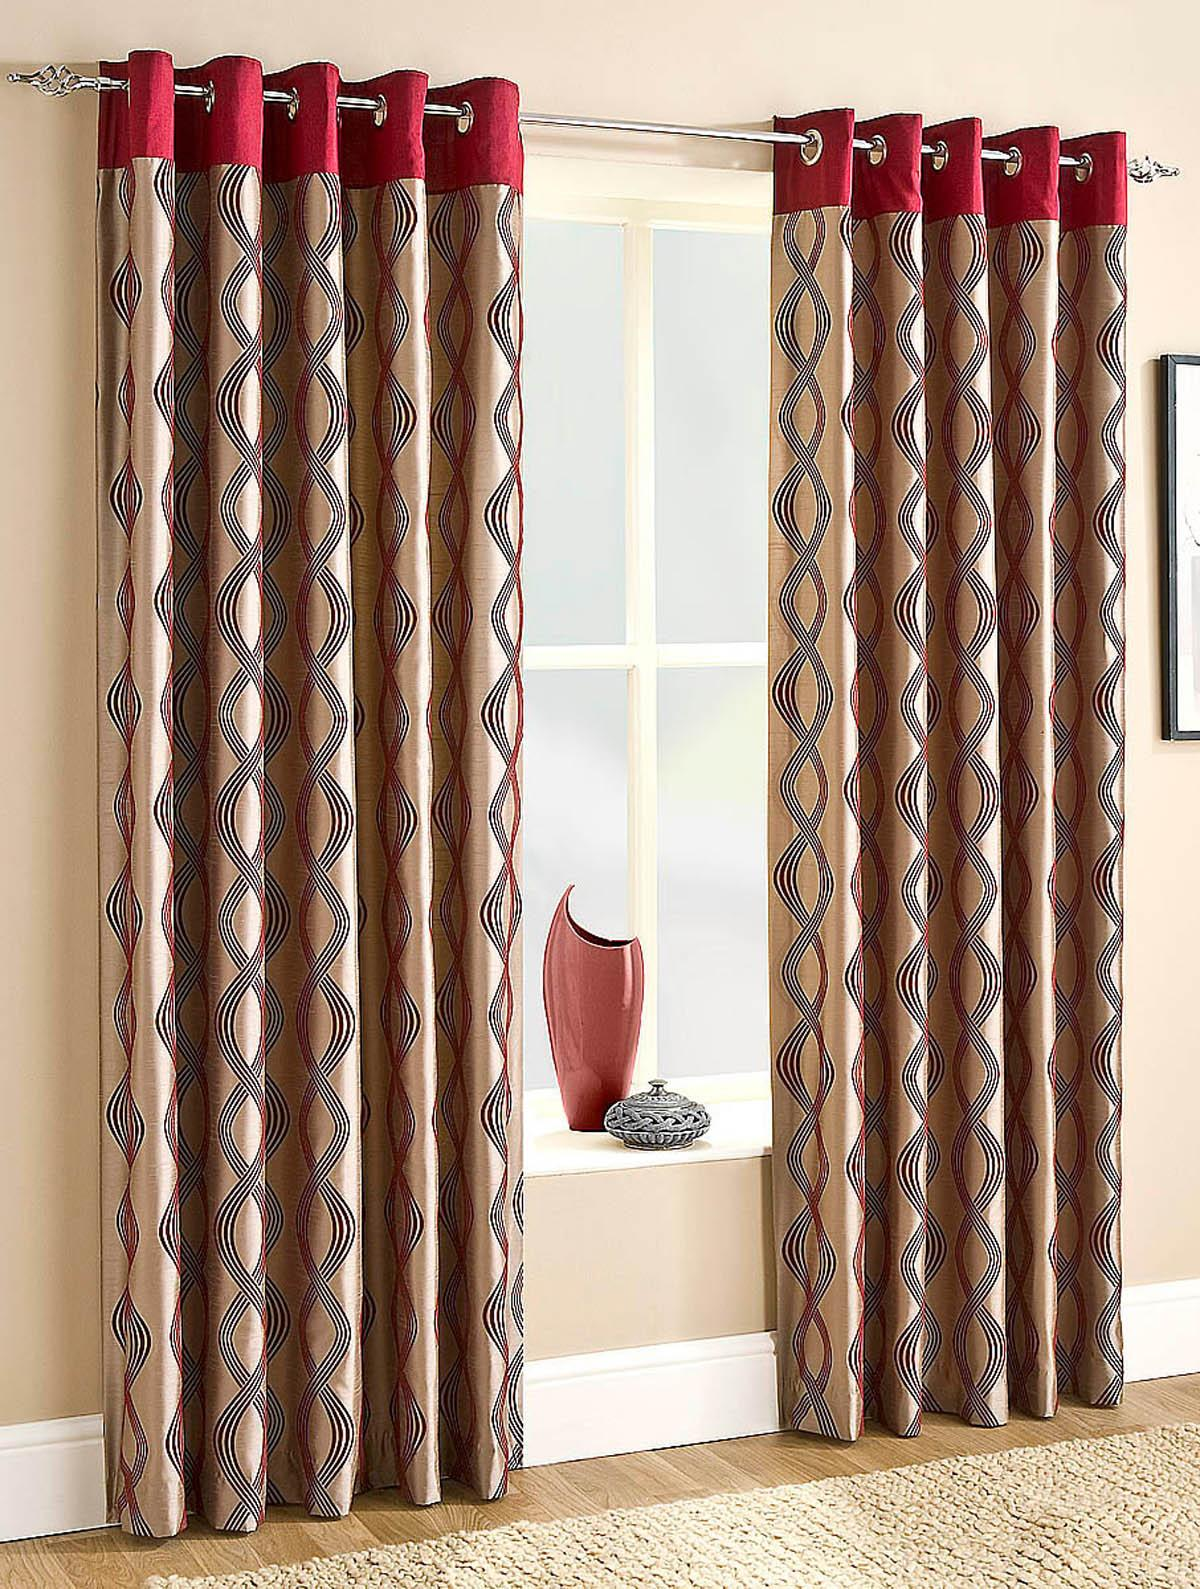 Cheap Curtains Online Red Curtains Shop For Cheap Products And Save Online